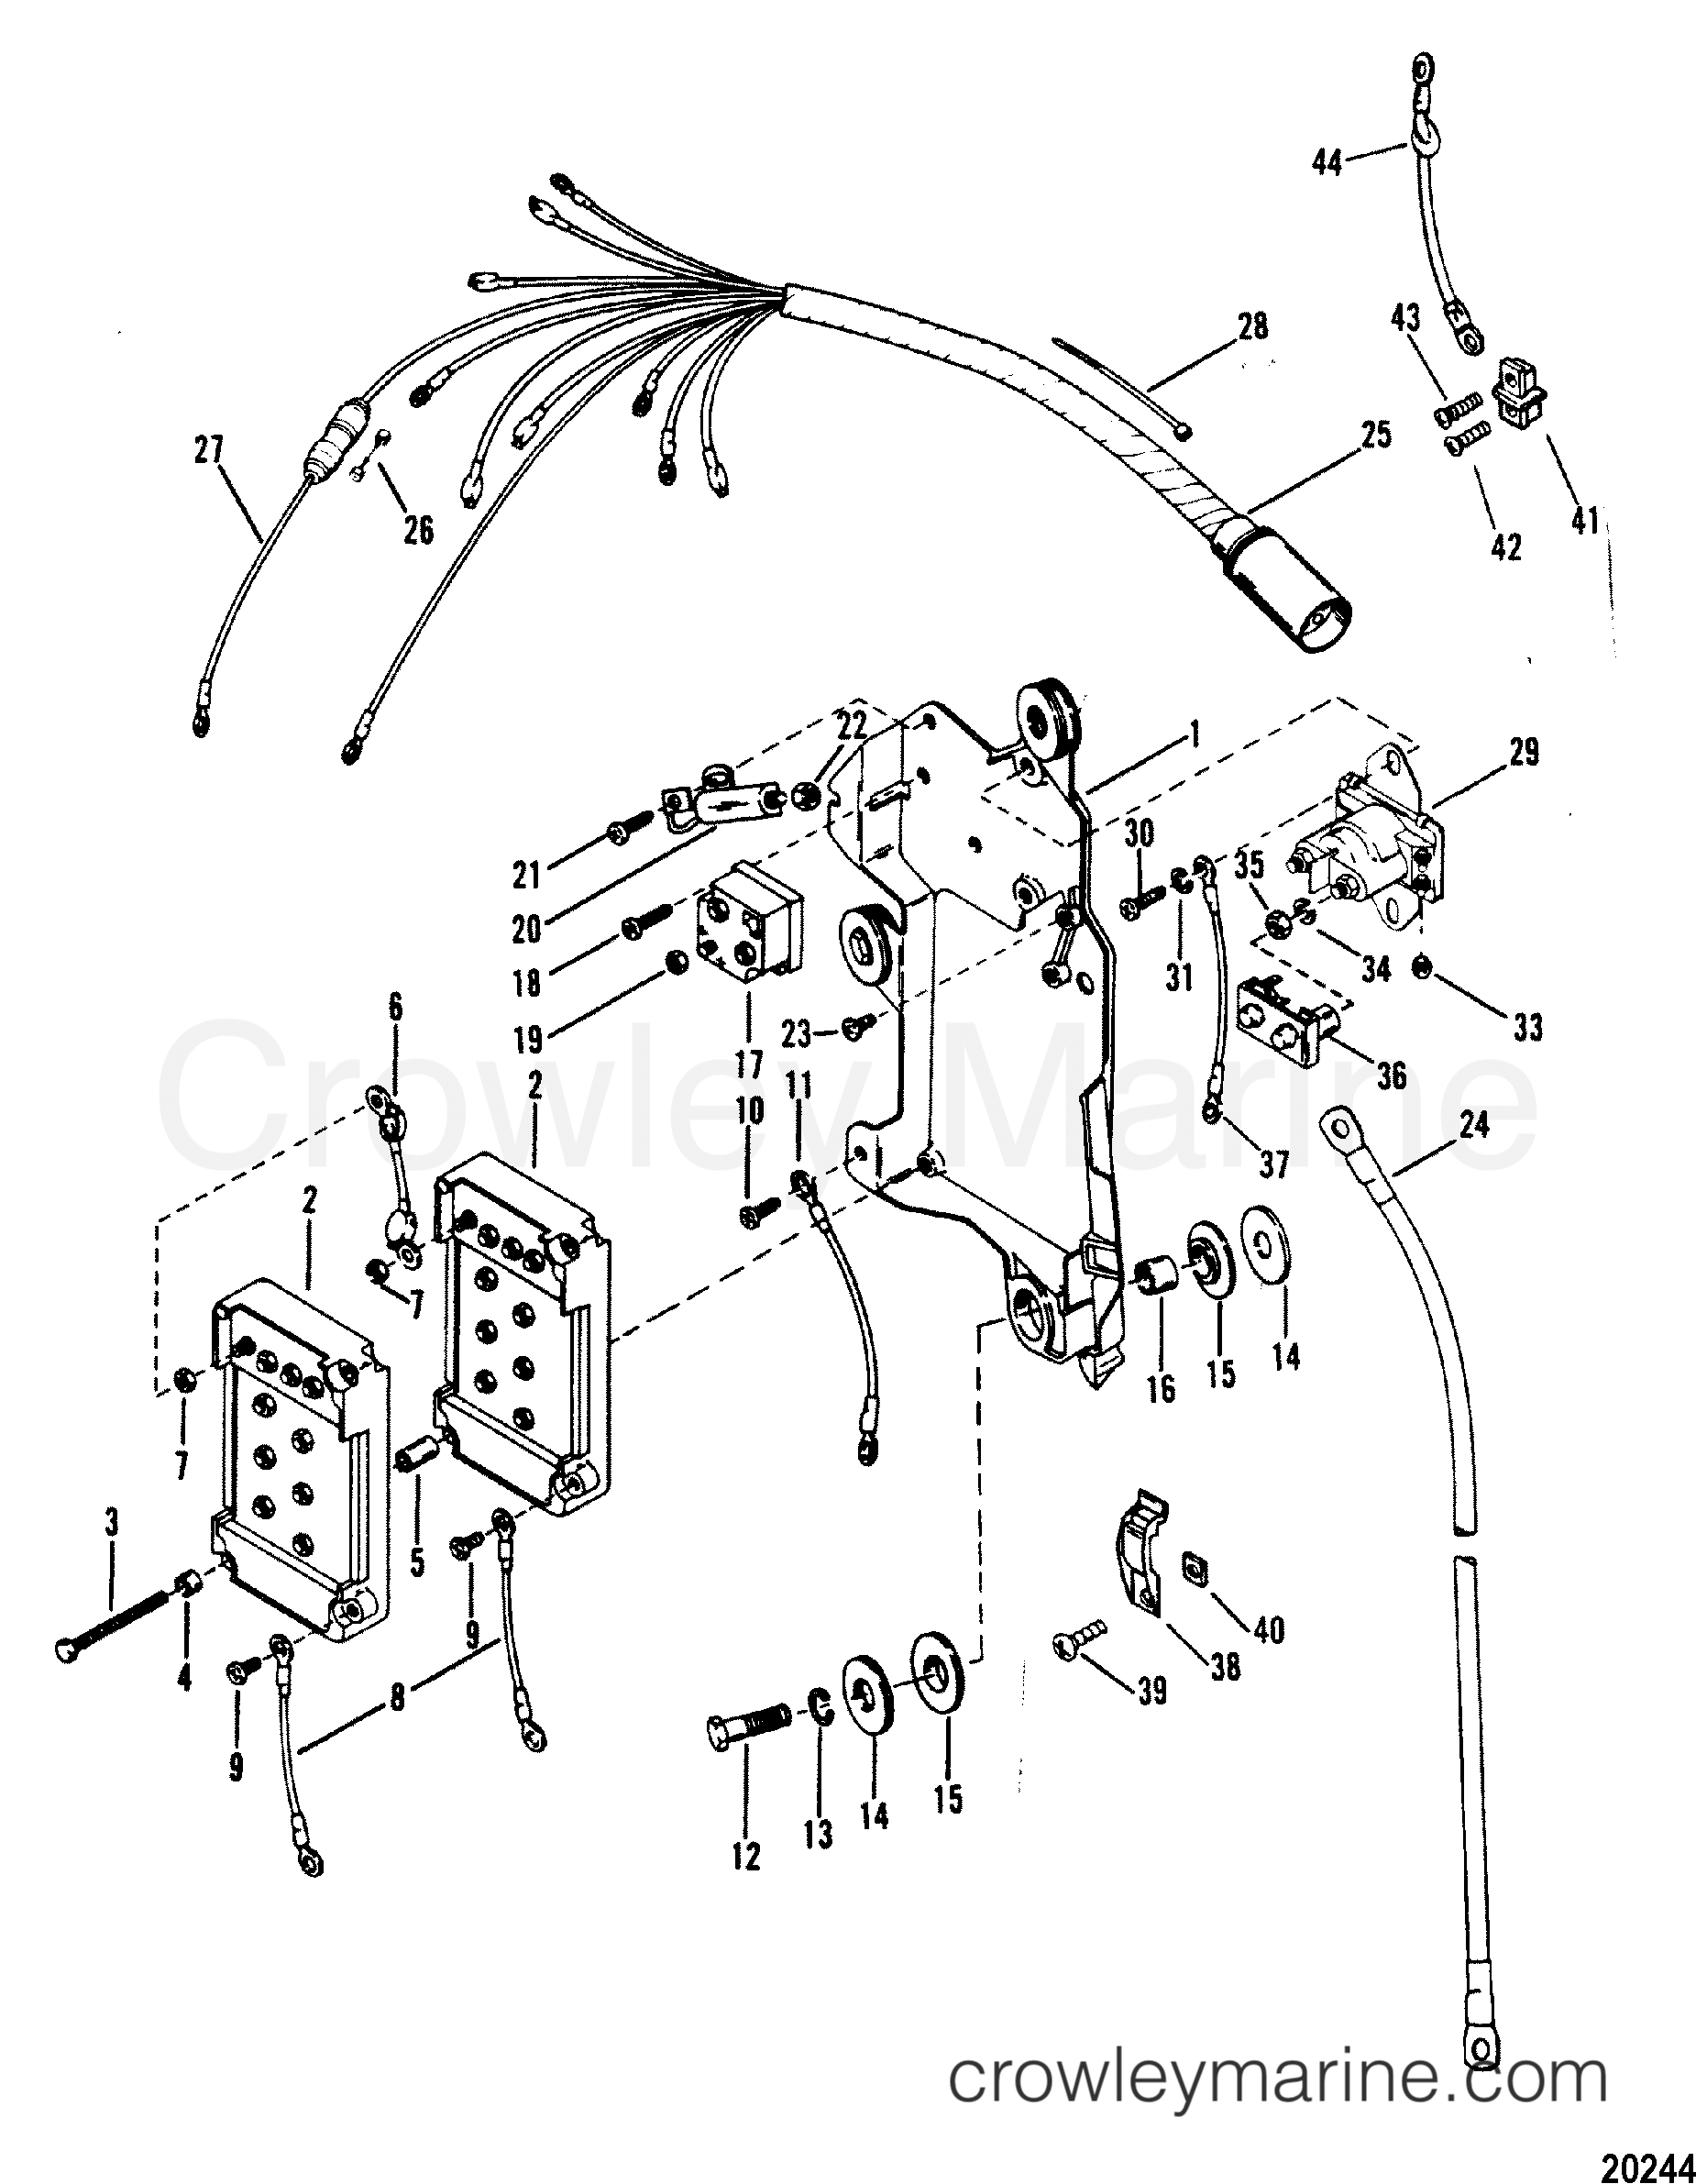 wiring harness starter solenoid and rectifier 1983 1983 mercury outboard wiring diagram #1